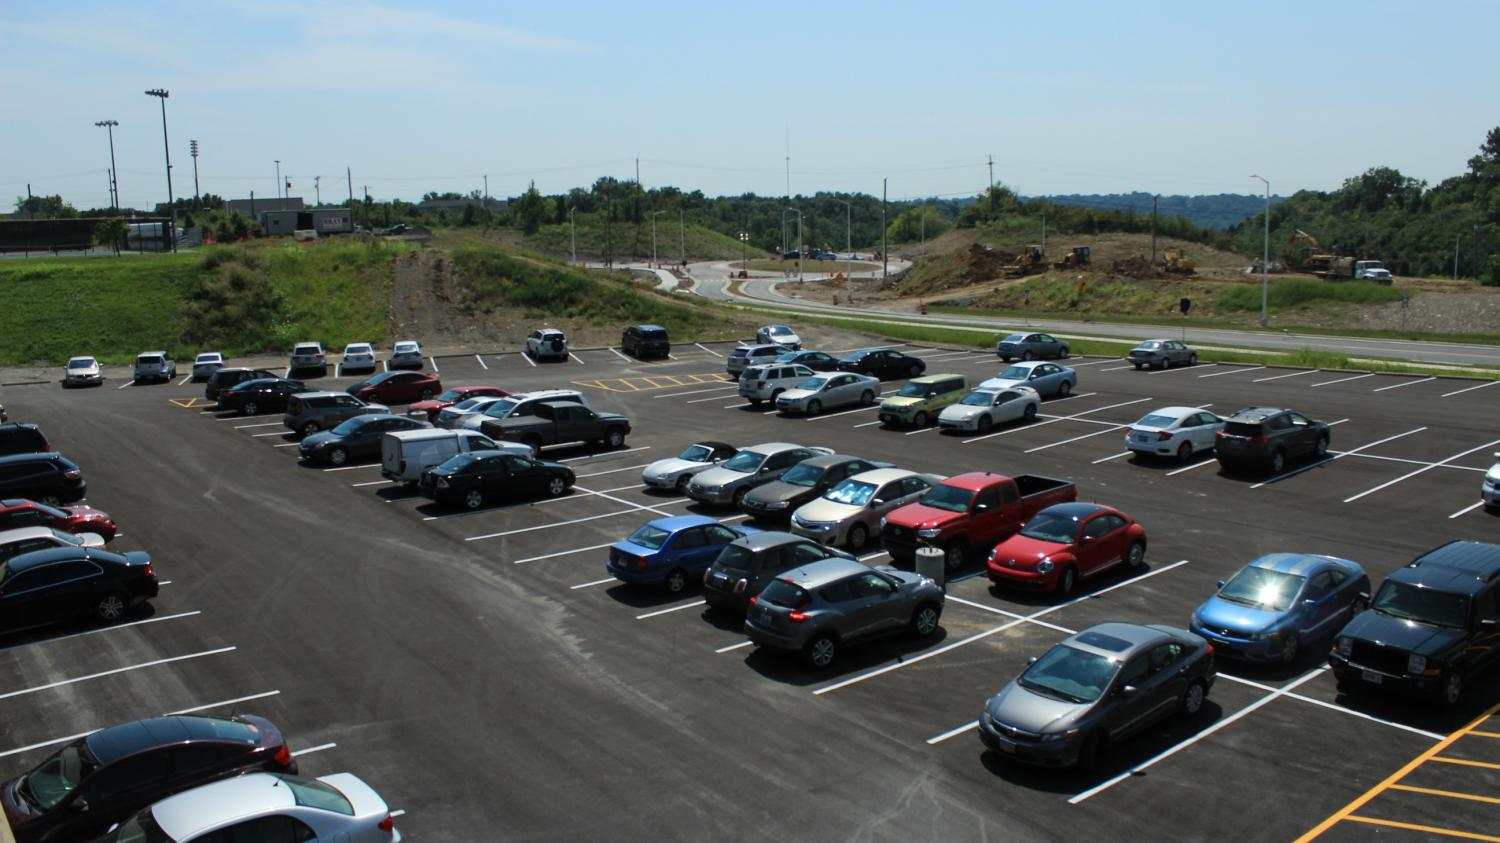 Lot K is open after being redone while North Connector Road is partially open.